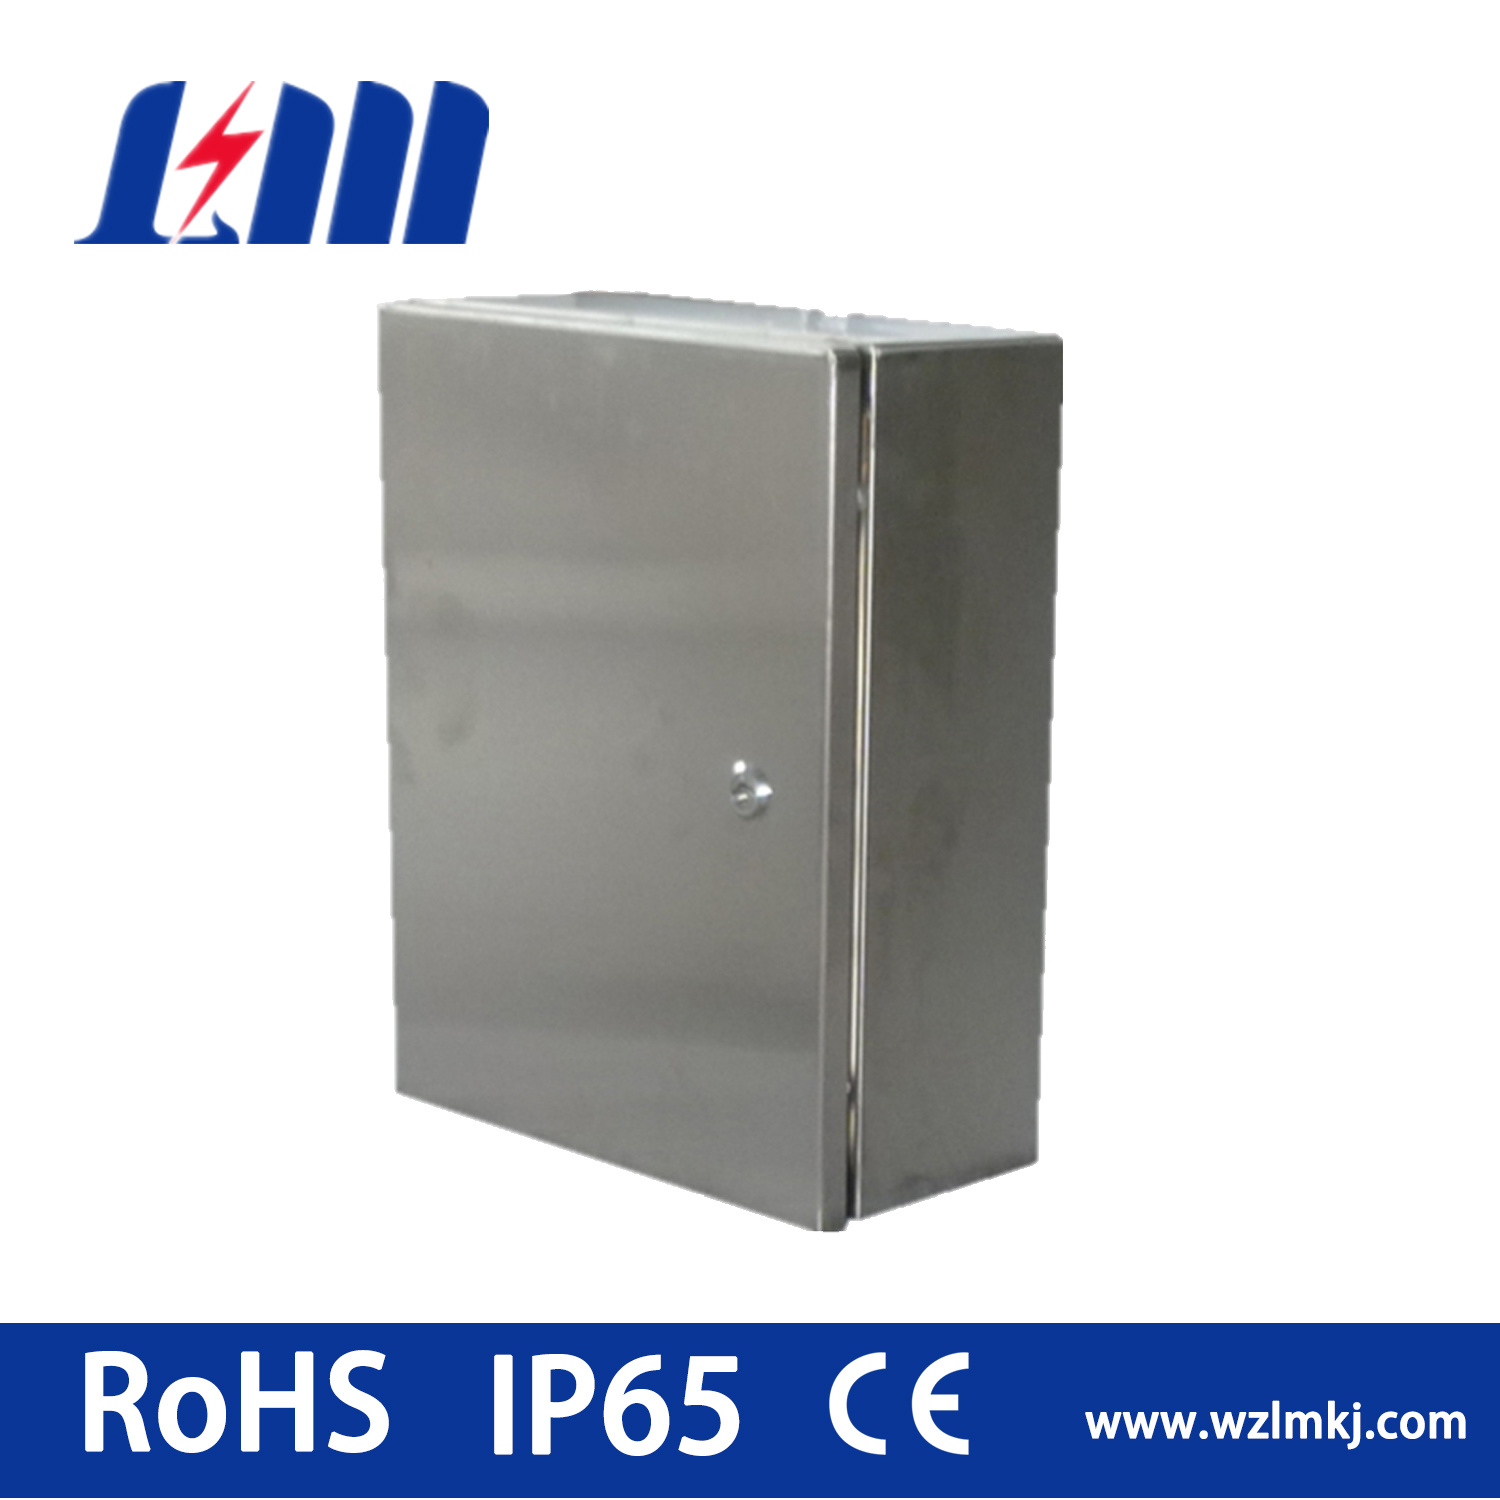 Stainless Steel 304 Enclosure (400x300x200mm)